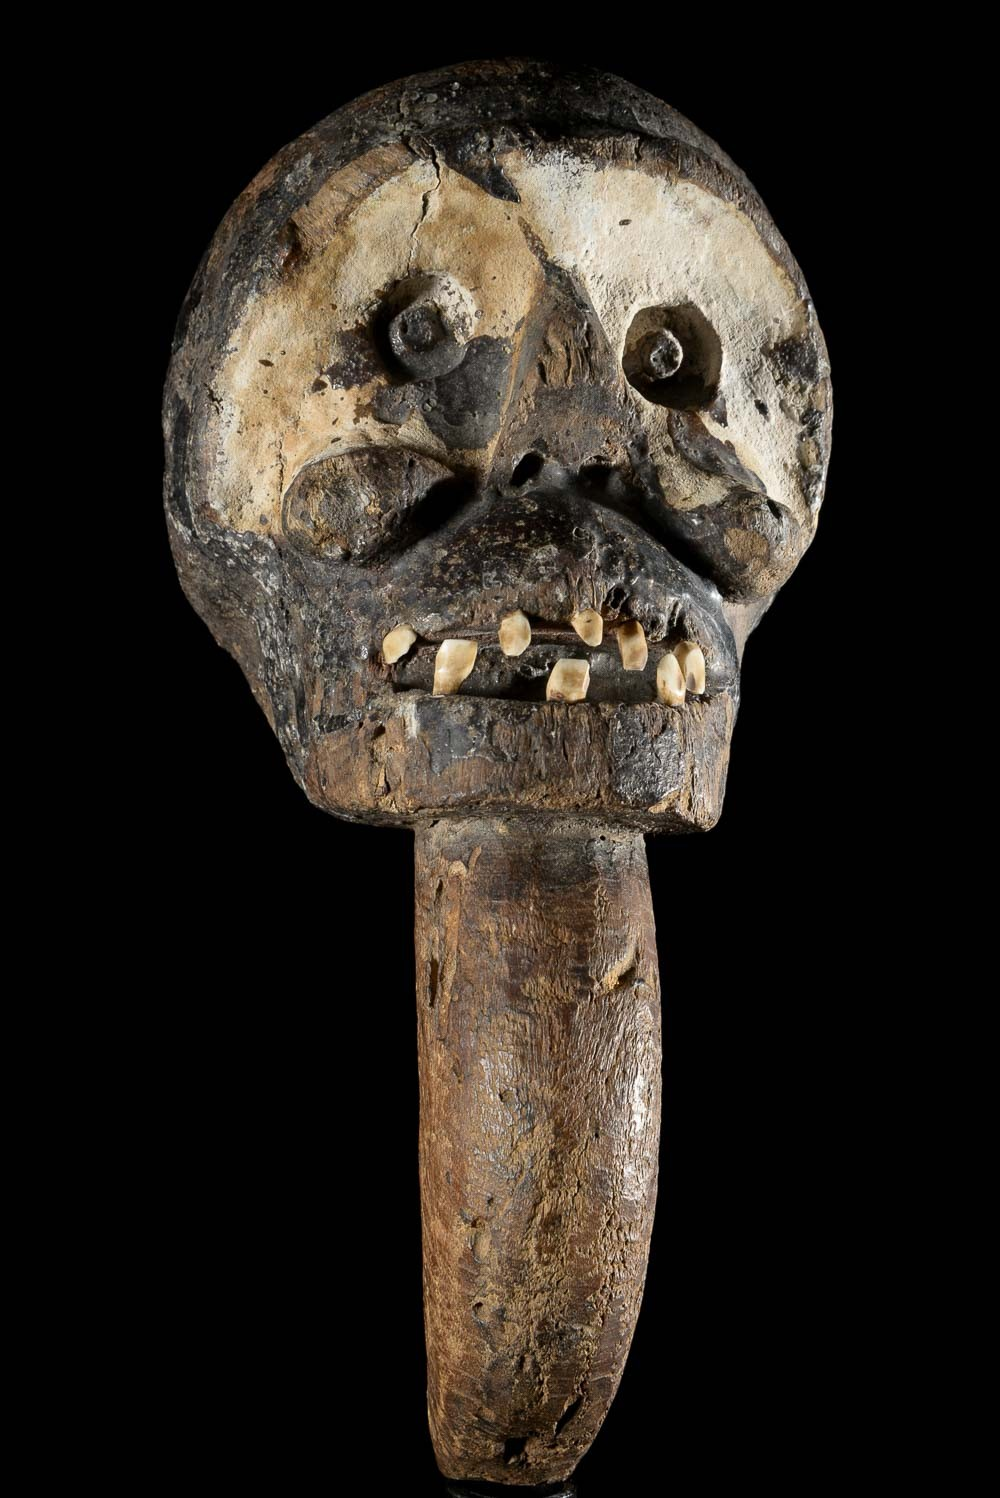 A monkey-head   scepter of the Bulu of Cameroon. Ca. 1950. Height: 12.5 in (32 cm).